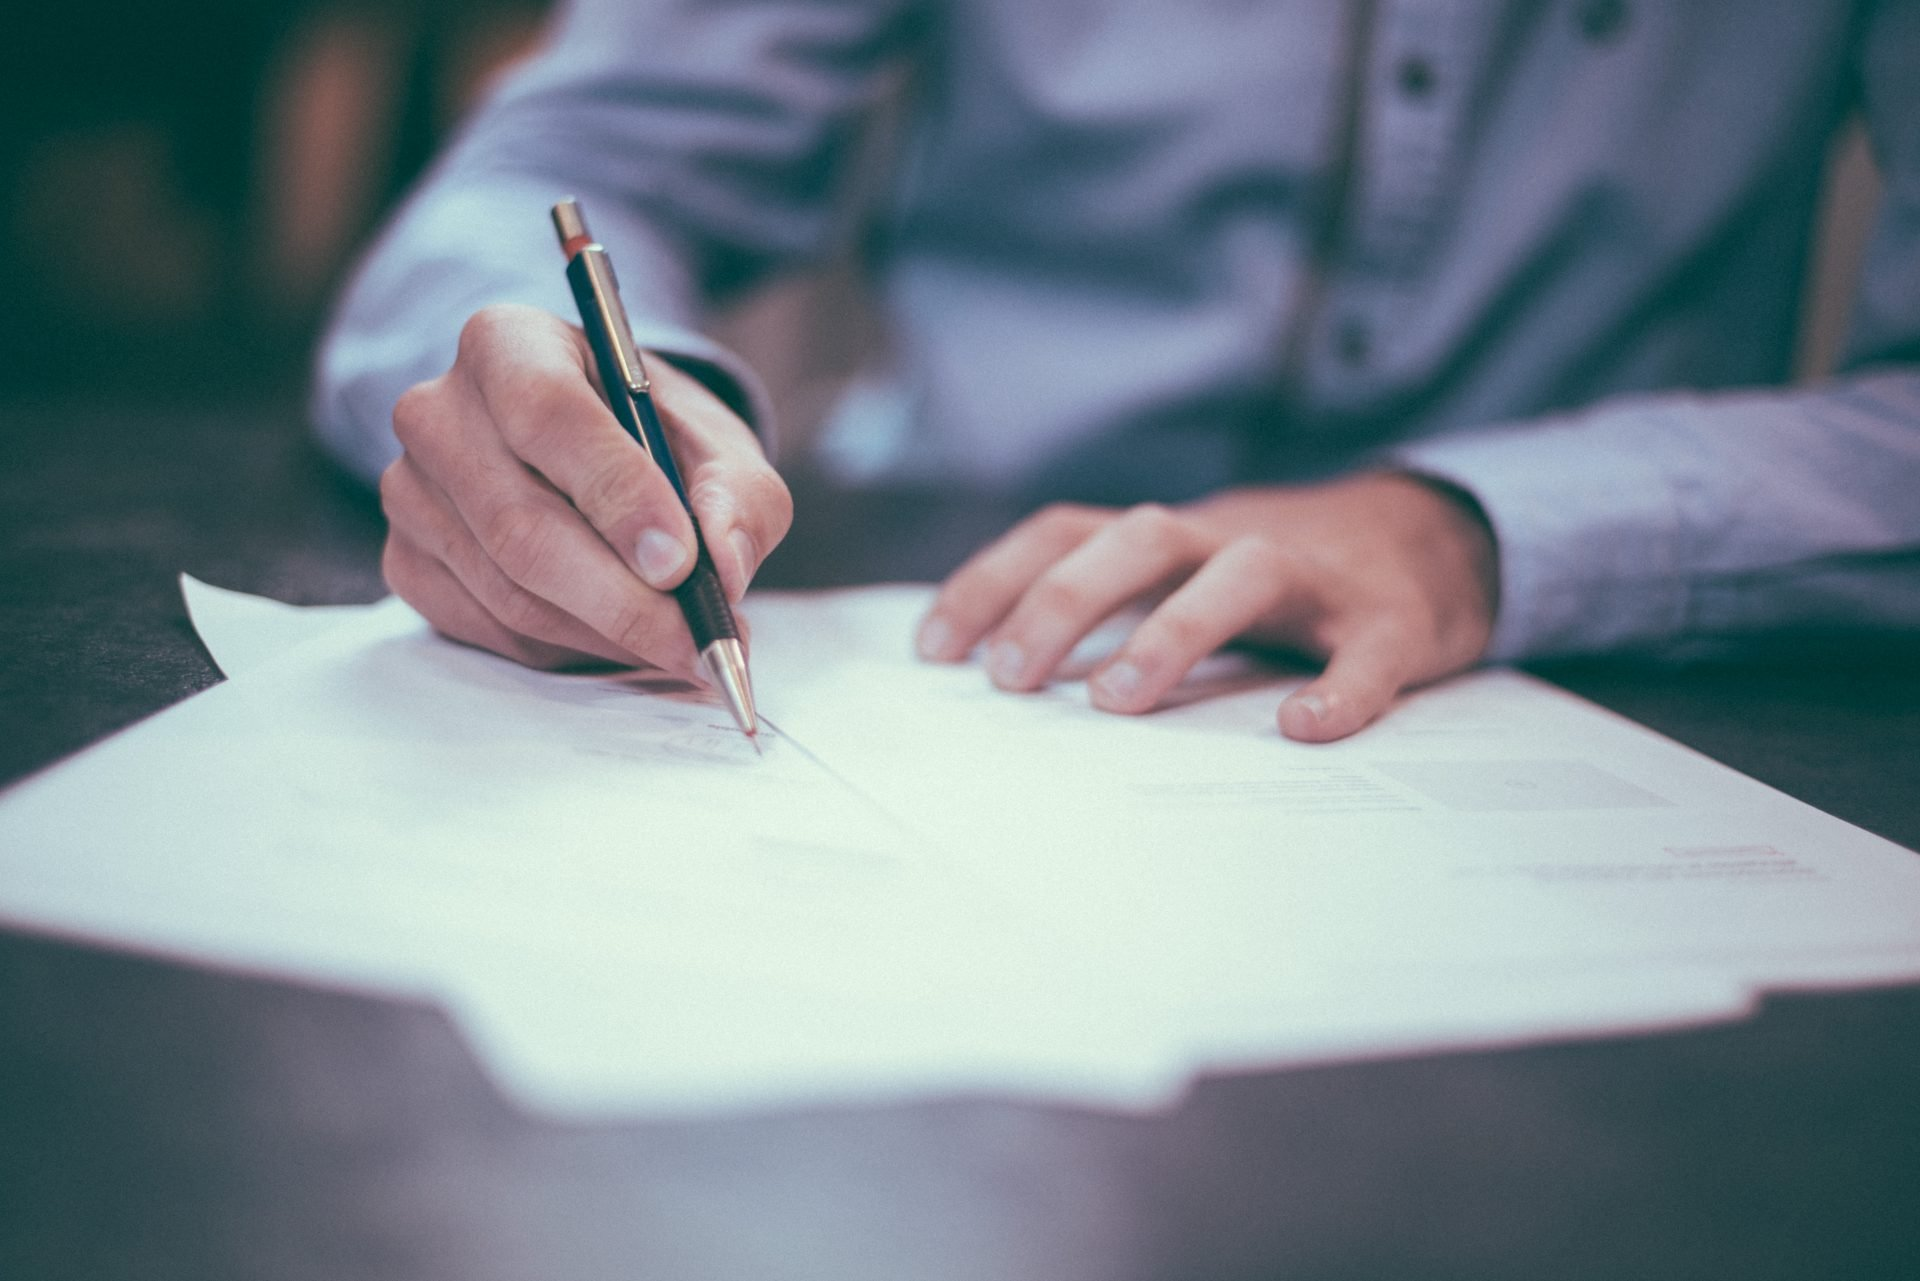 Person writing on a piece of a paper using a pen